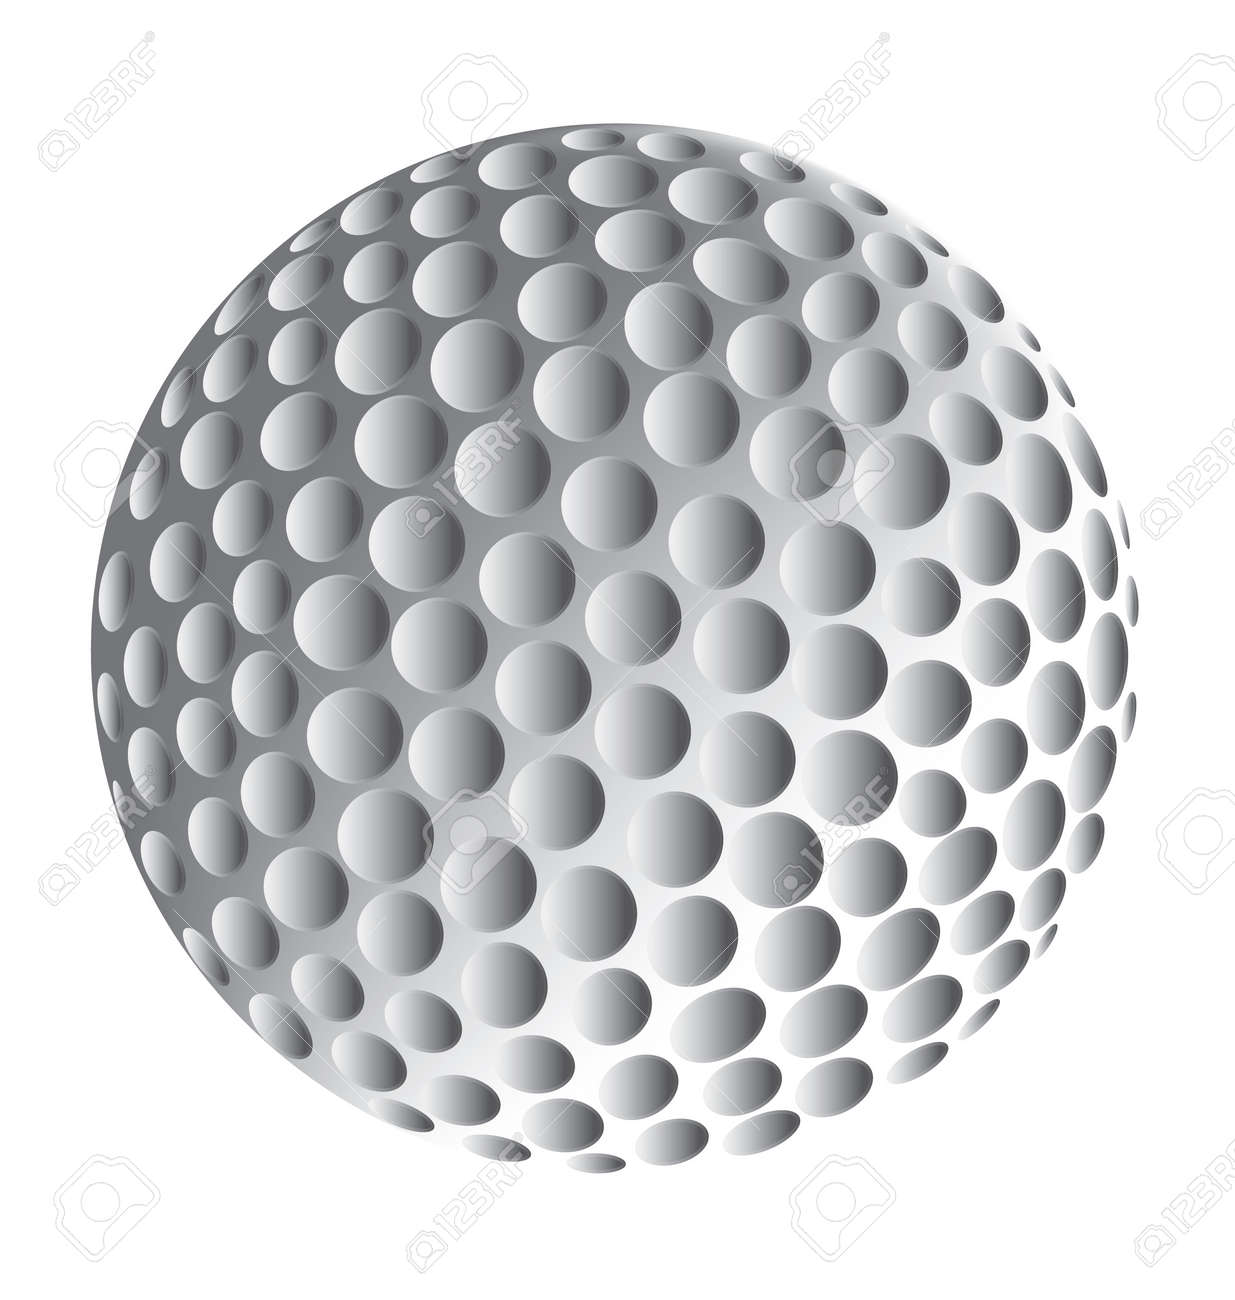 22 749 golf ball stock illustrations cliparts and royalty free